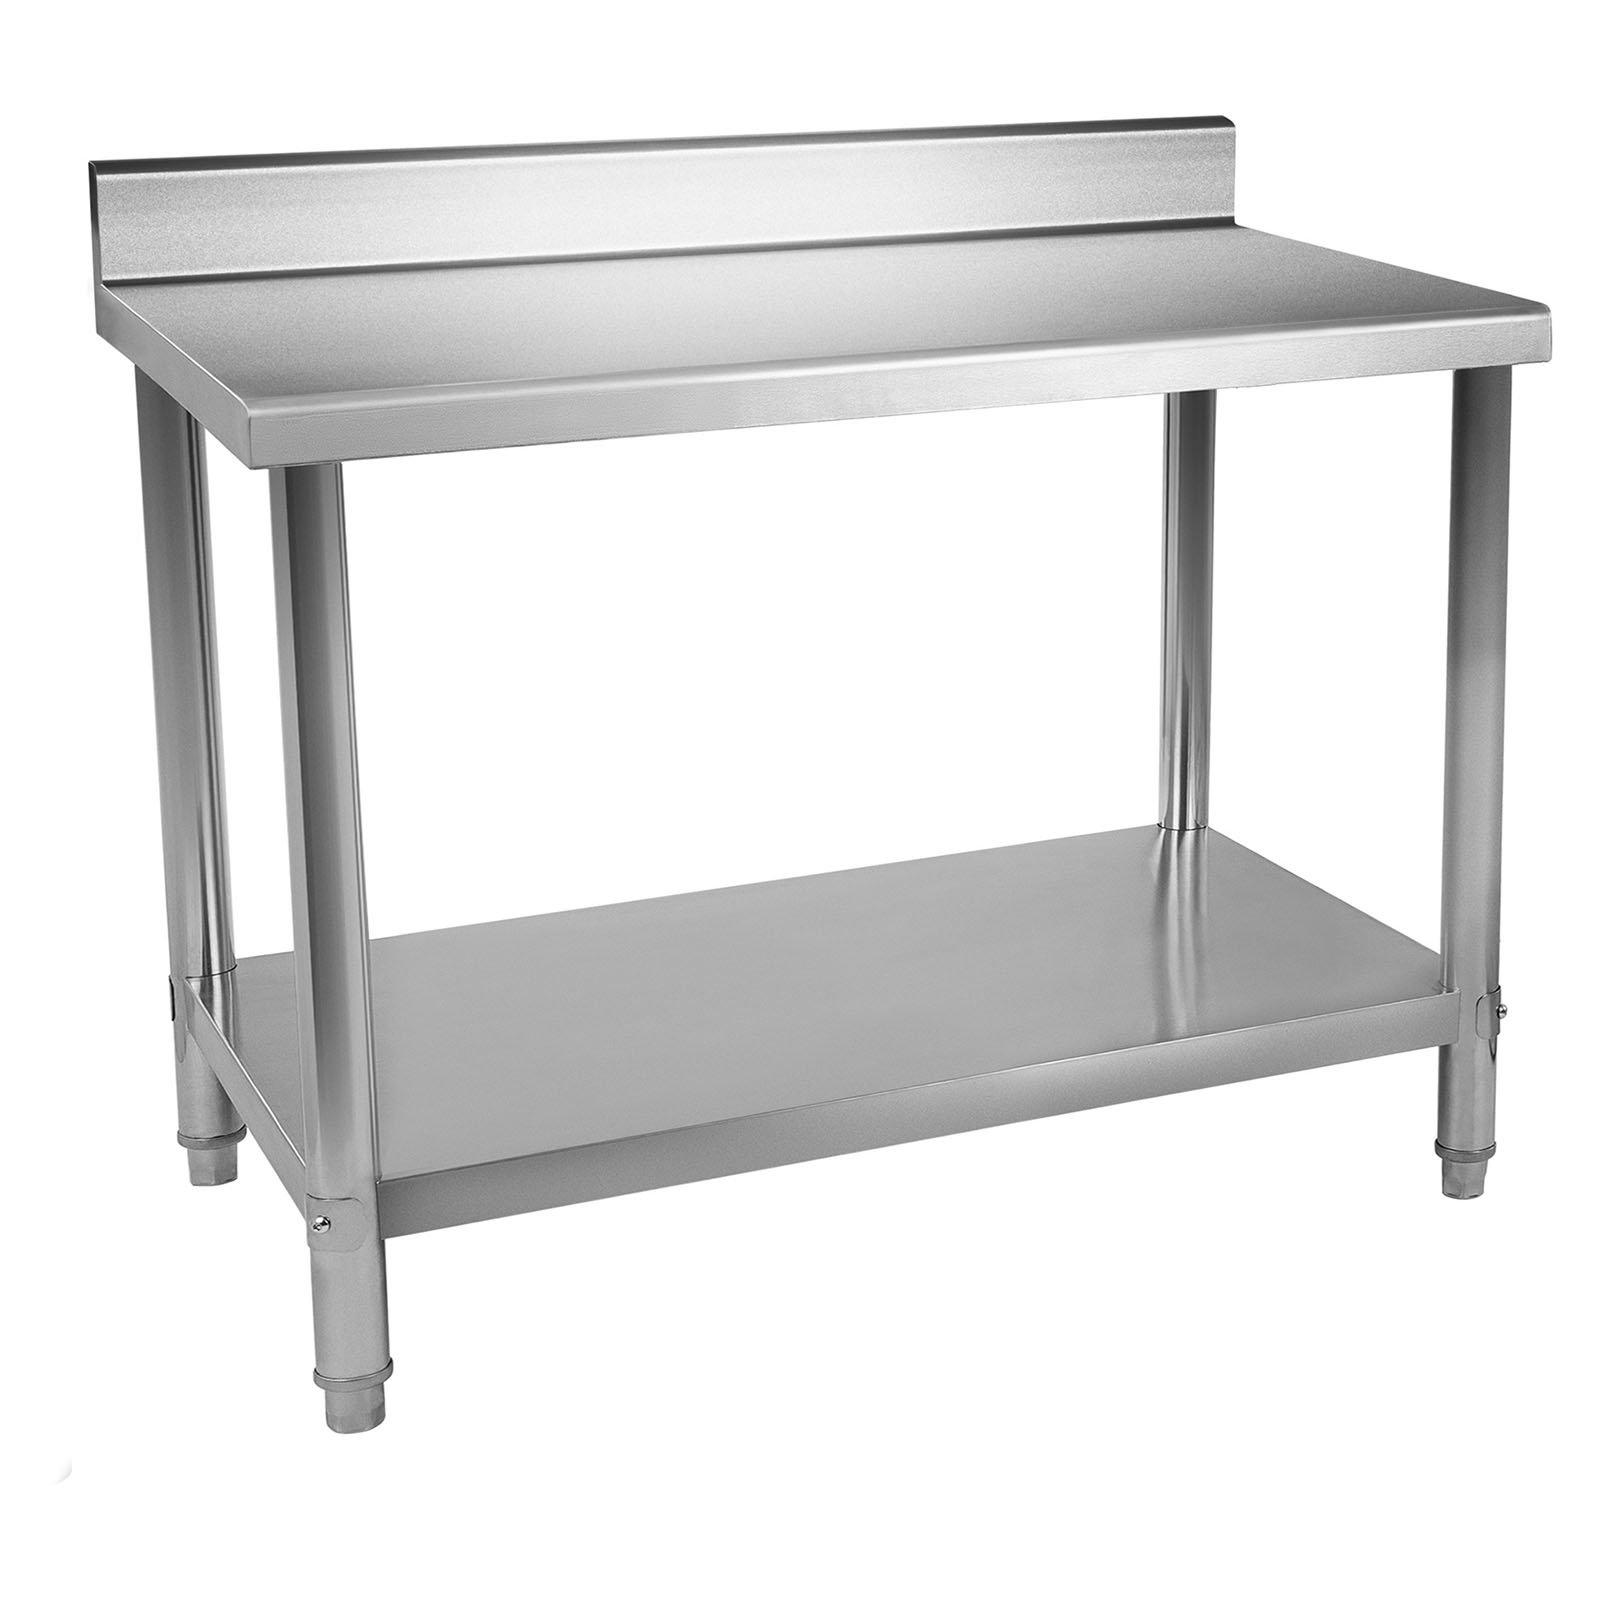 Table Inox Professionnel Table De Travail Adossee Plan Travail Etagere